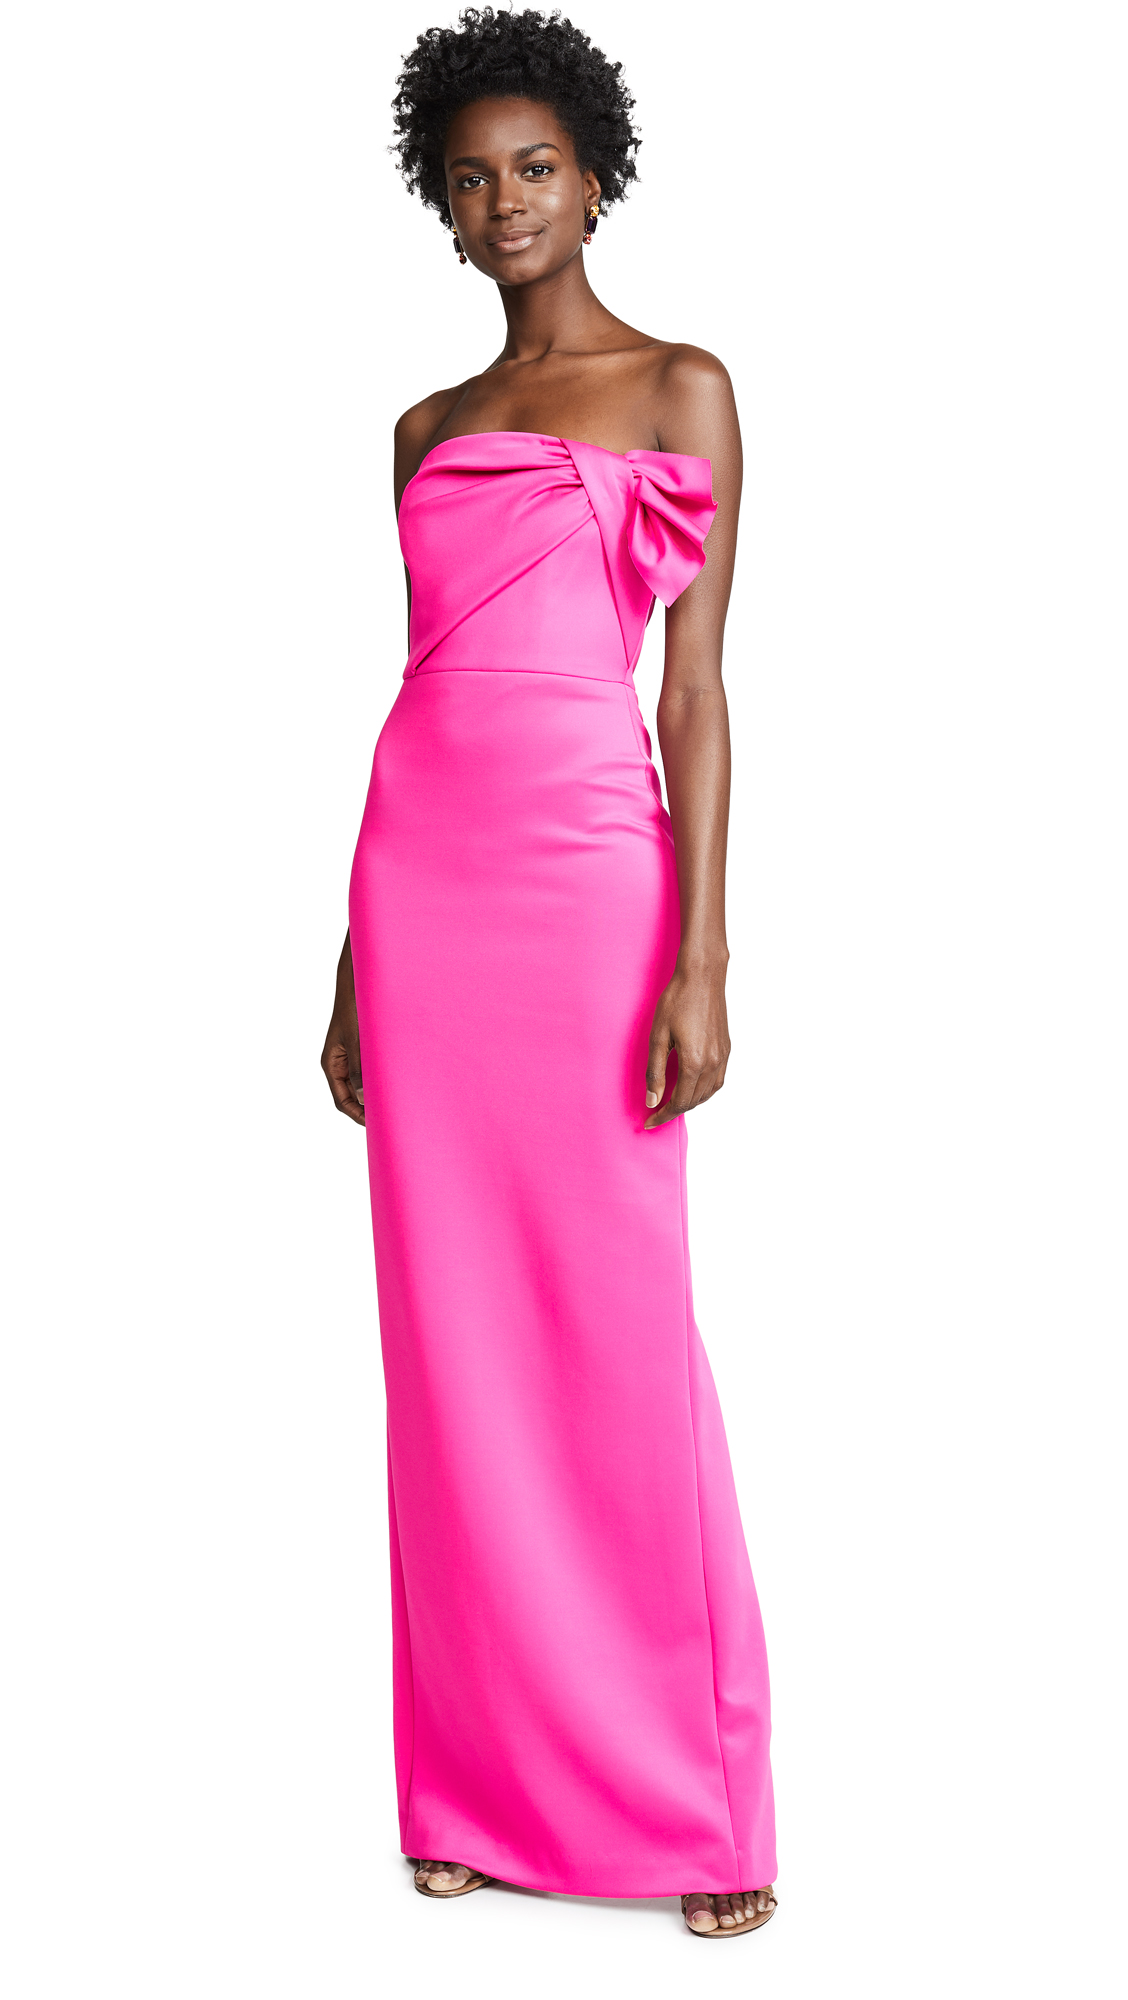 Black Halo Divina Gown - Iconic Pink